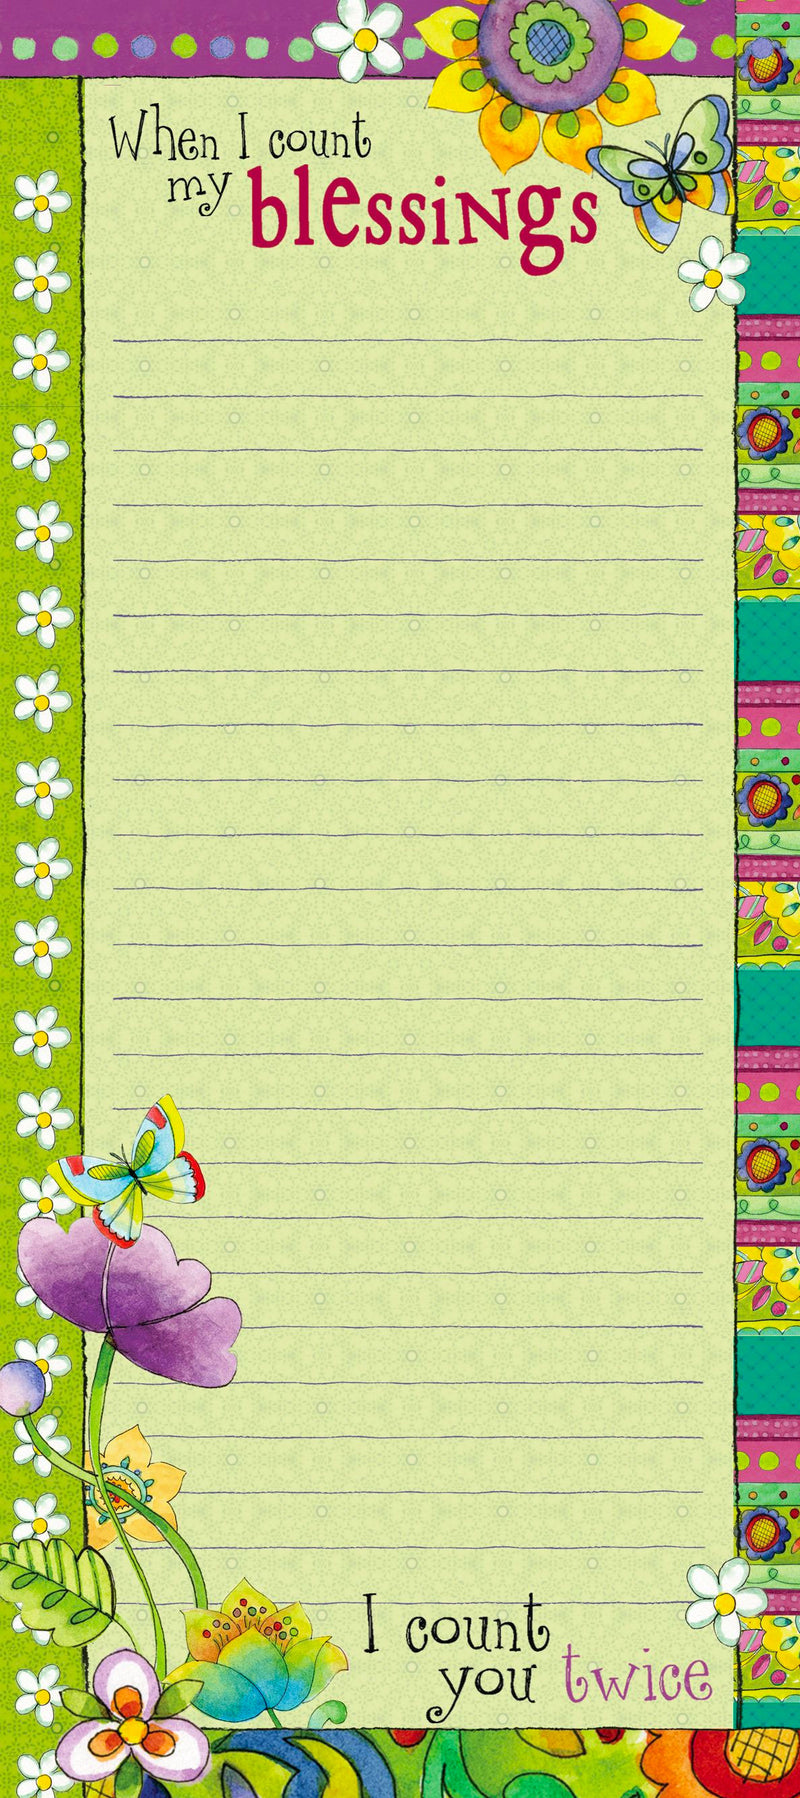 "Decorative magnetic list notepad features brightly colored flower design with inspirational message on every page. Sentiment featured. Dimensions 4"" x 9"". Lined notepad with magnetic back to display on a fridge or magnetic surface. Material: Magnet/Paper."